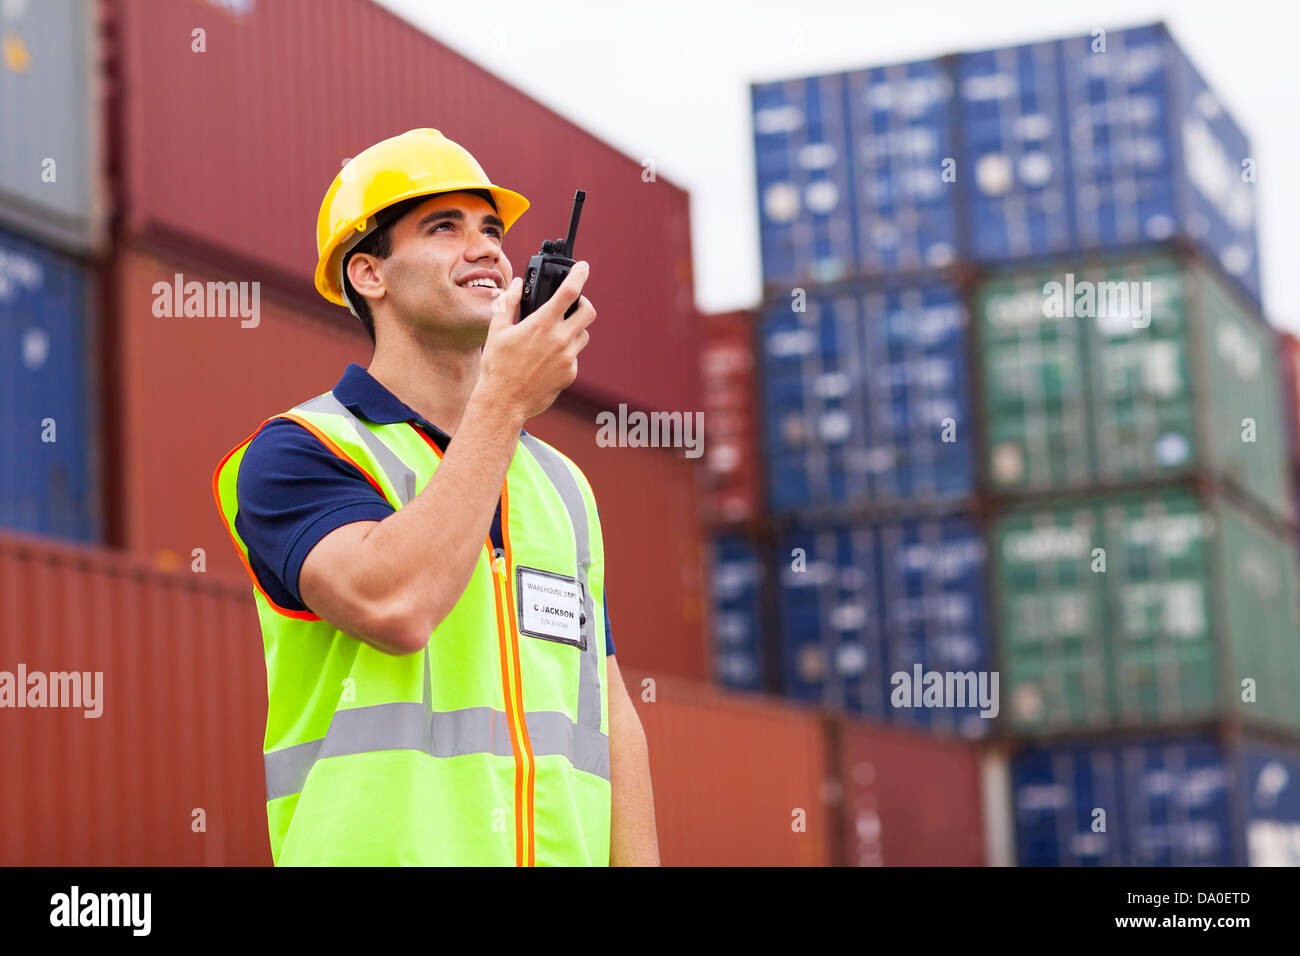 young harbor worker talking on the walkie-talkie at container warehouse - Stock Image